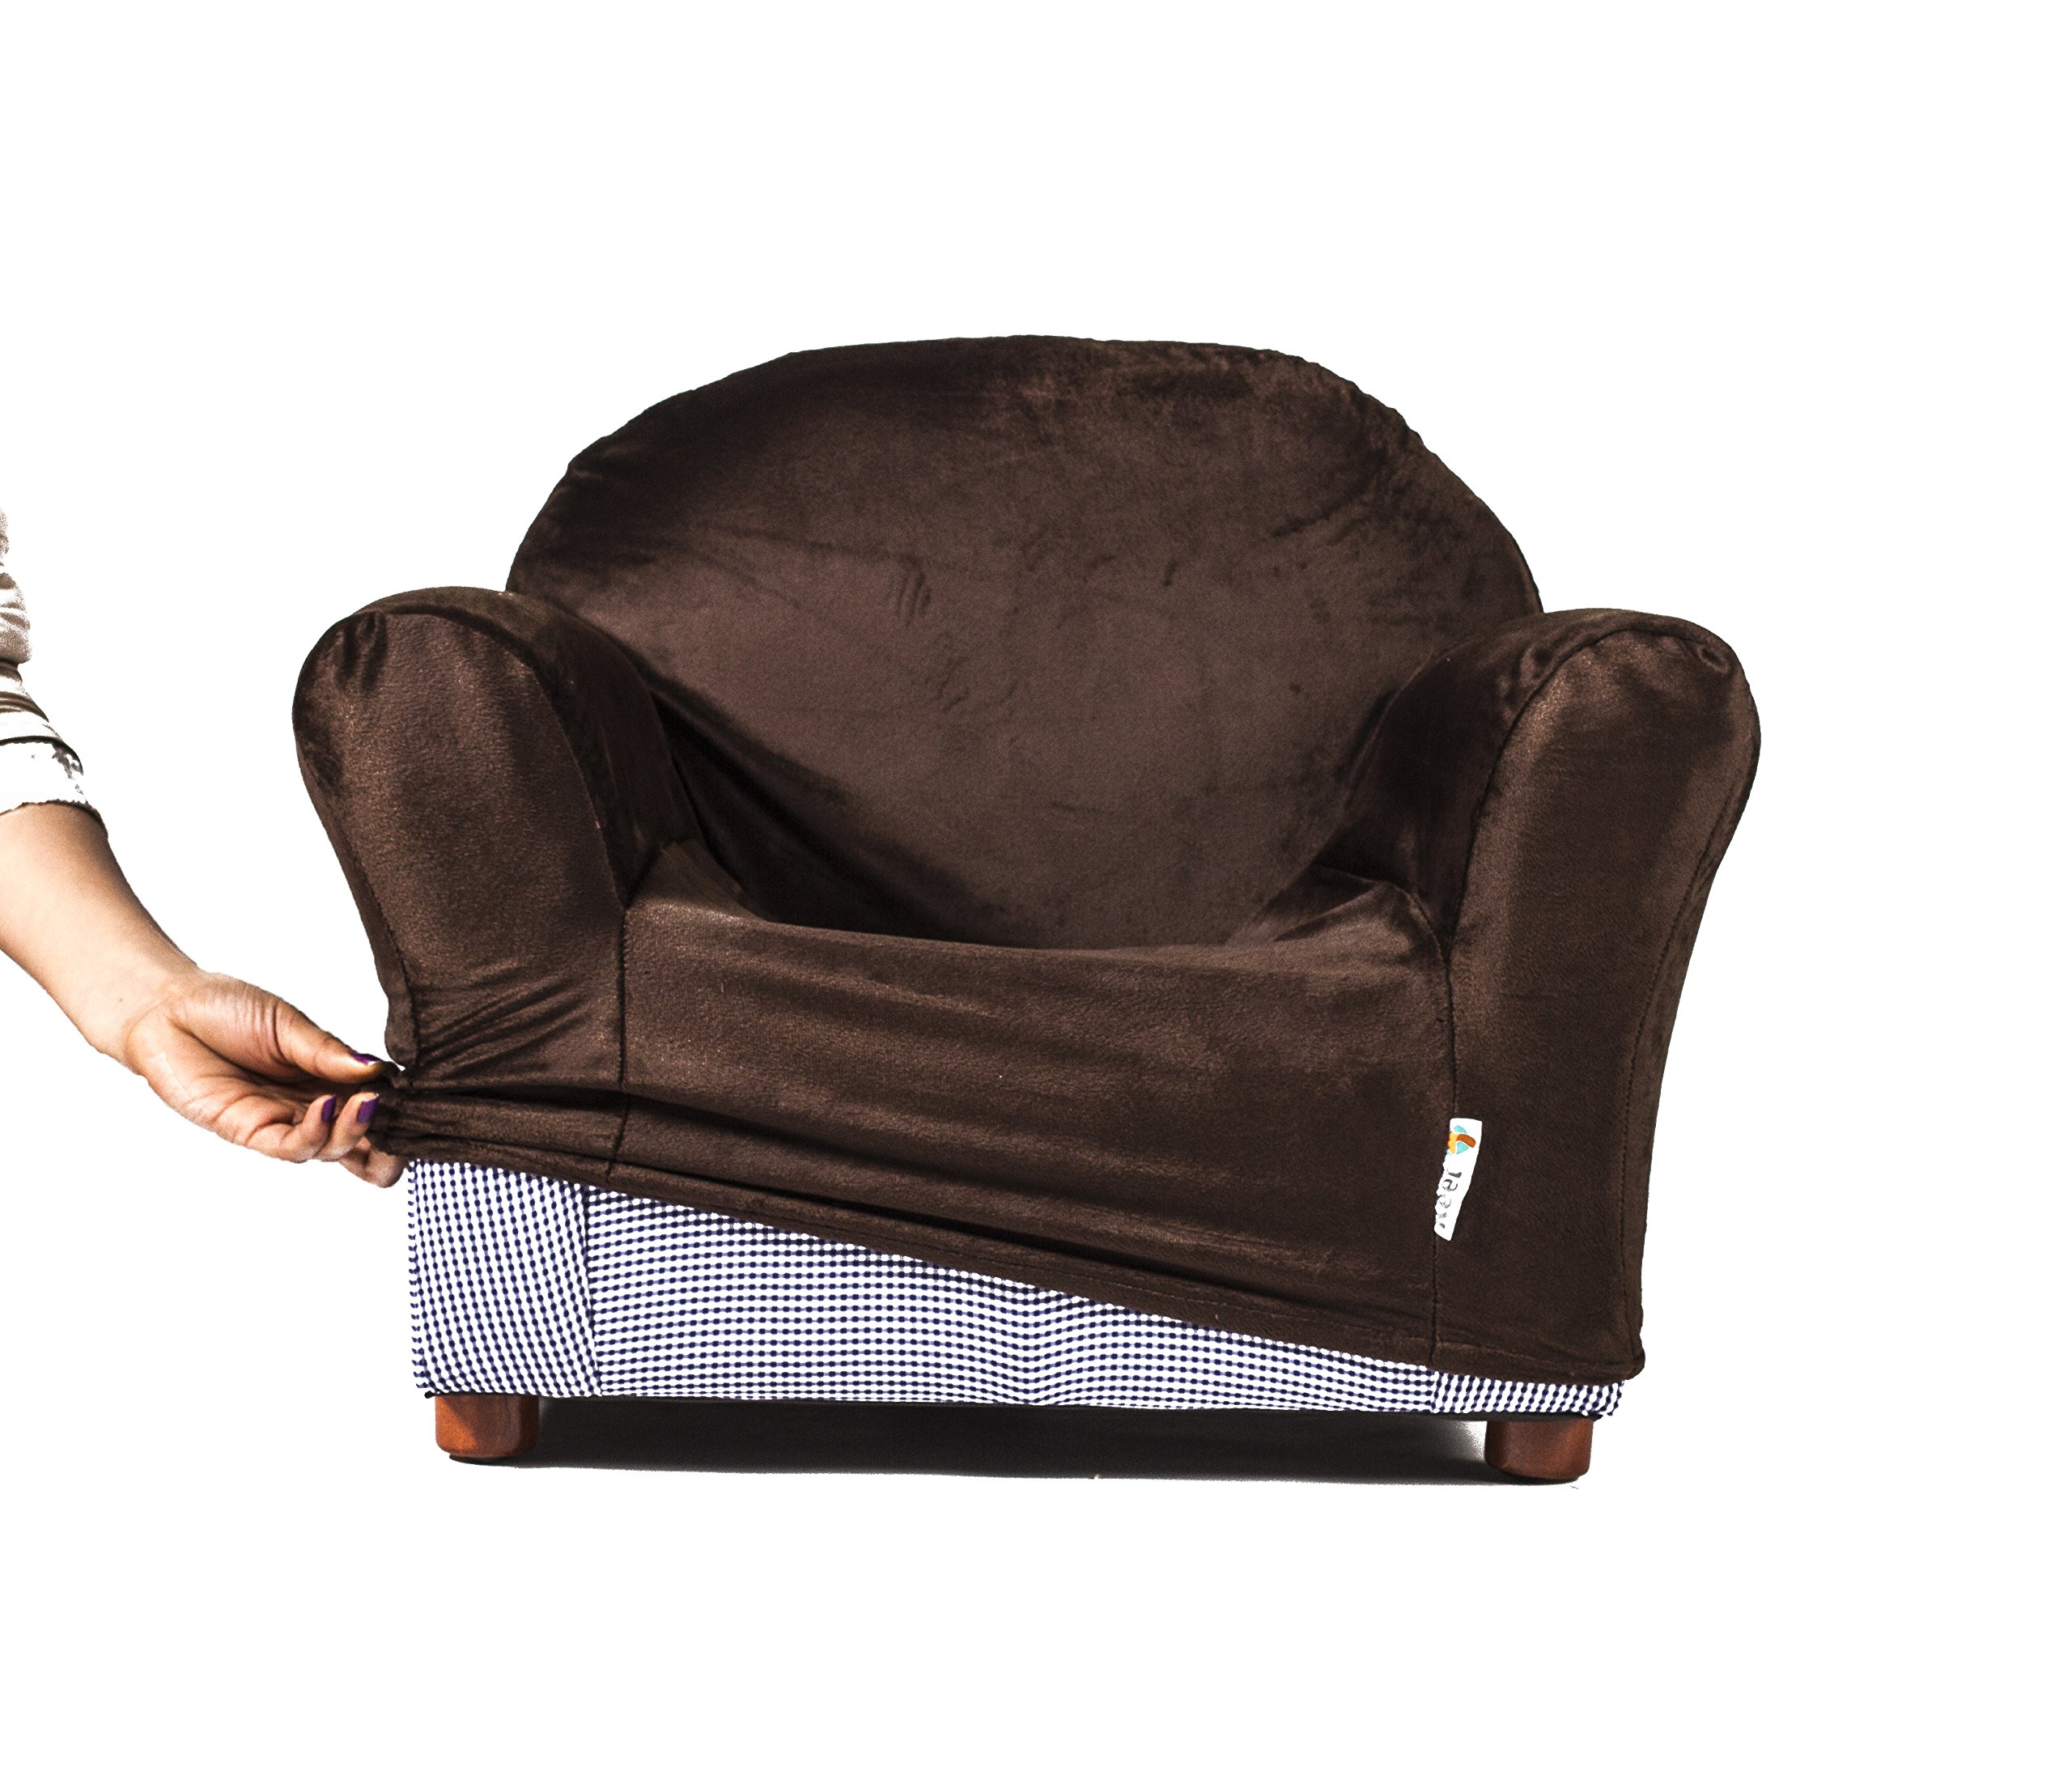 Keet Roundy Kids Chair COVER ONLY, 9 colors available (Brown)